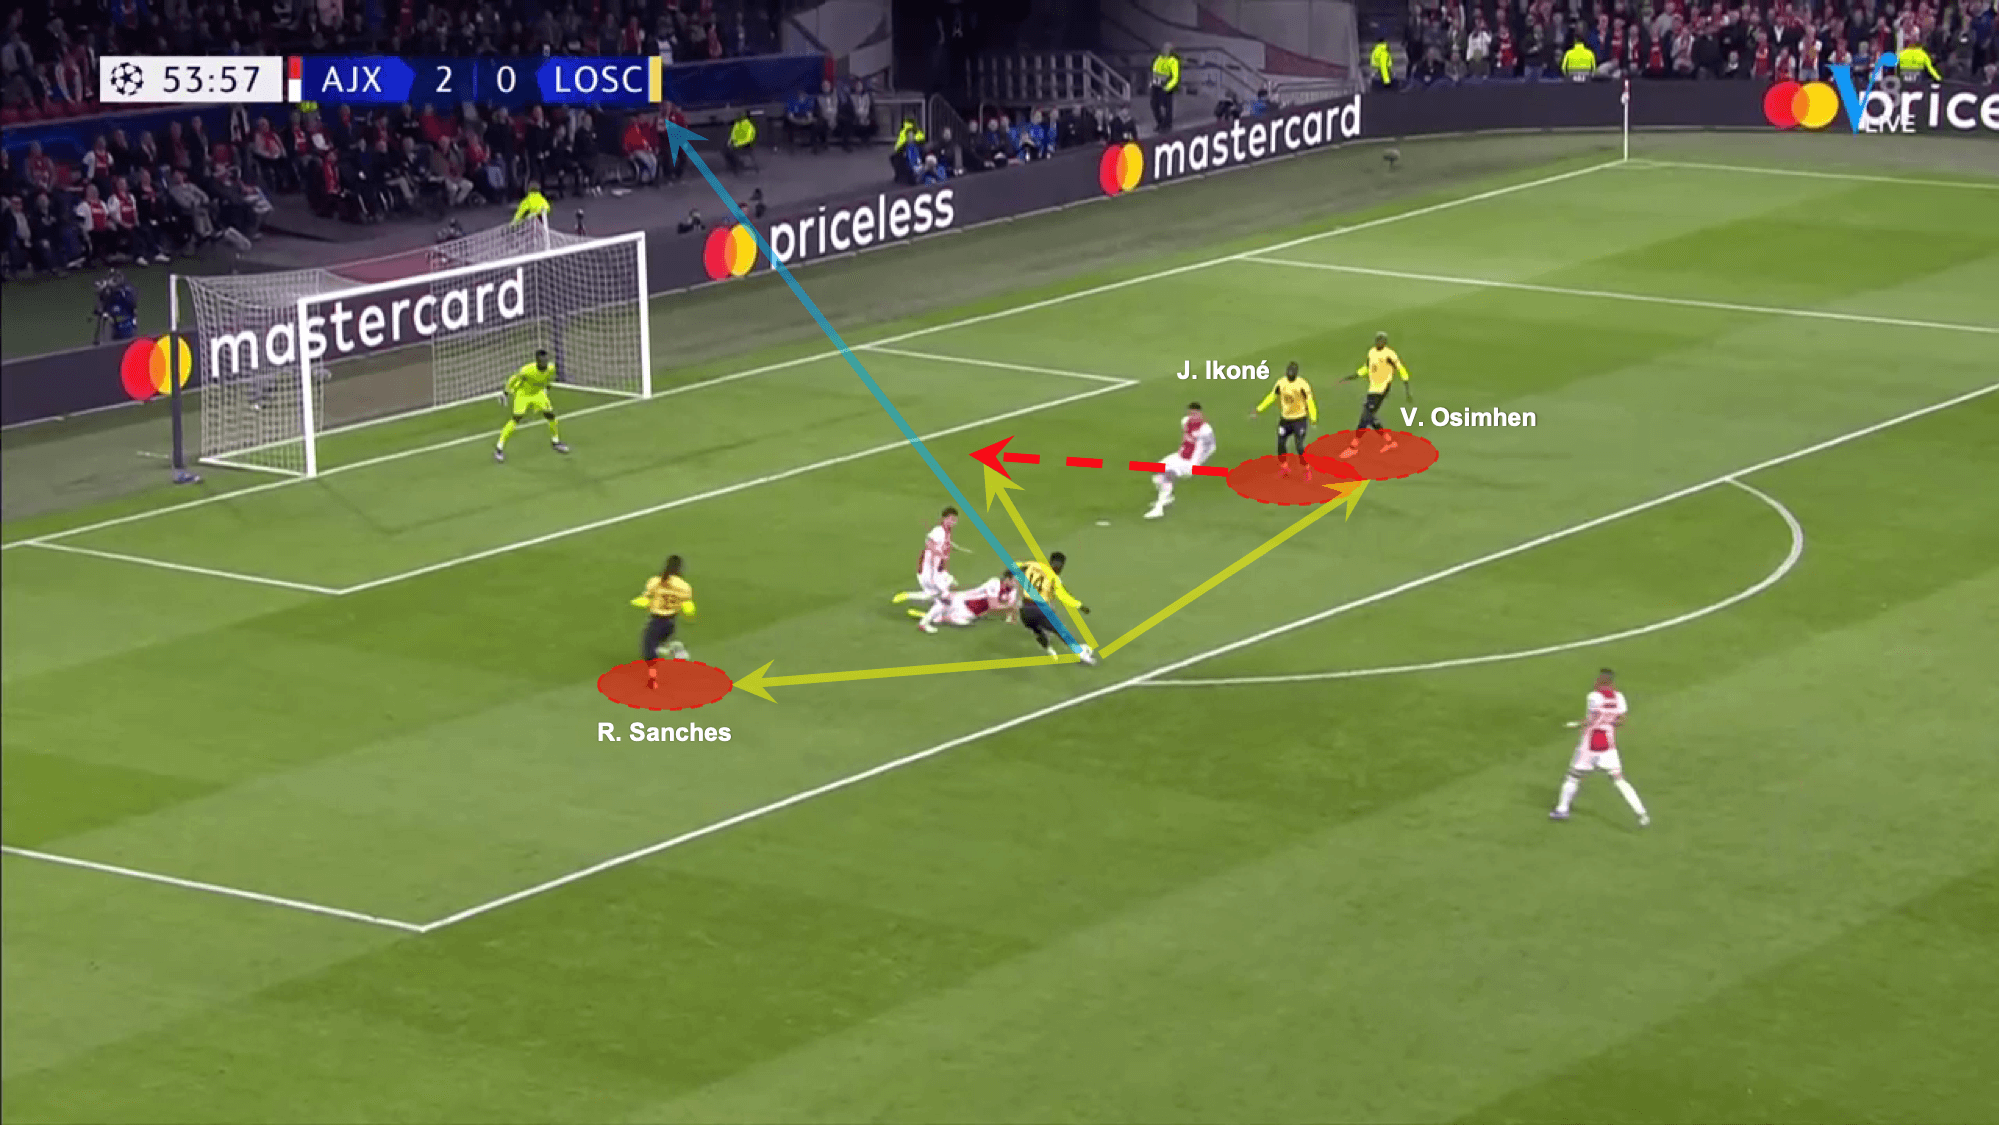 UEFA Champions League 2019/20: Ajax vs Lille - Tactical Analysis tactics